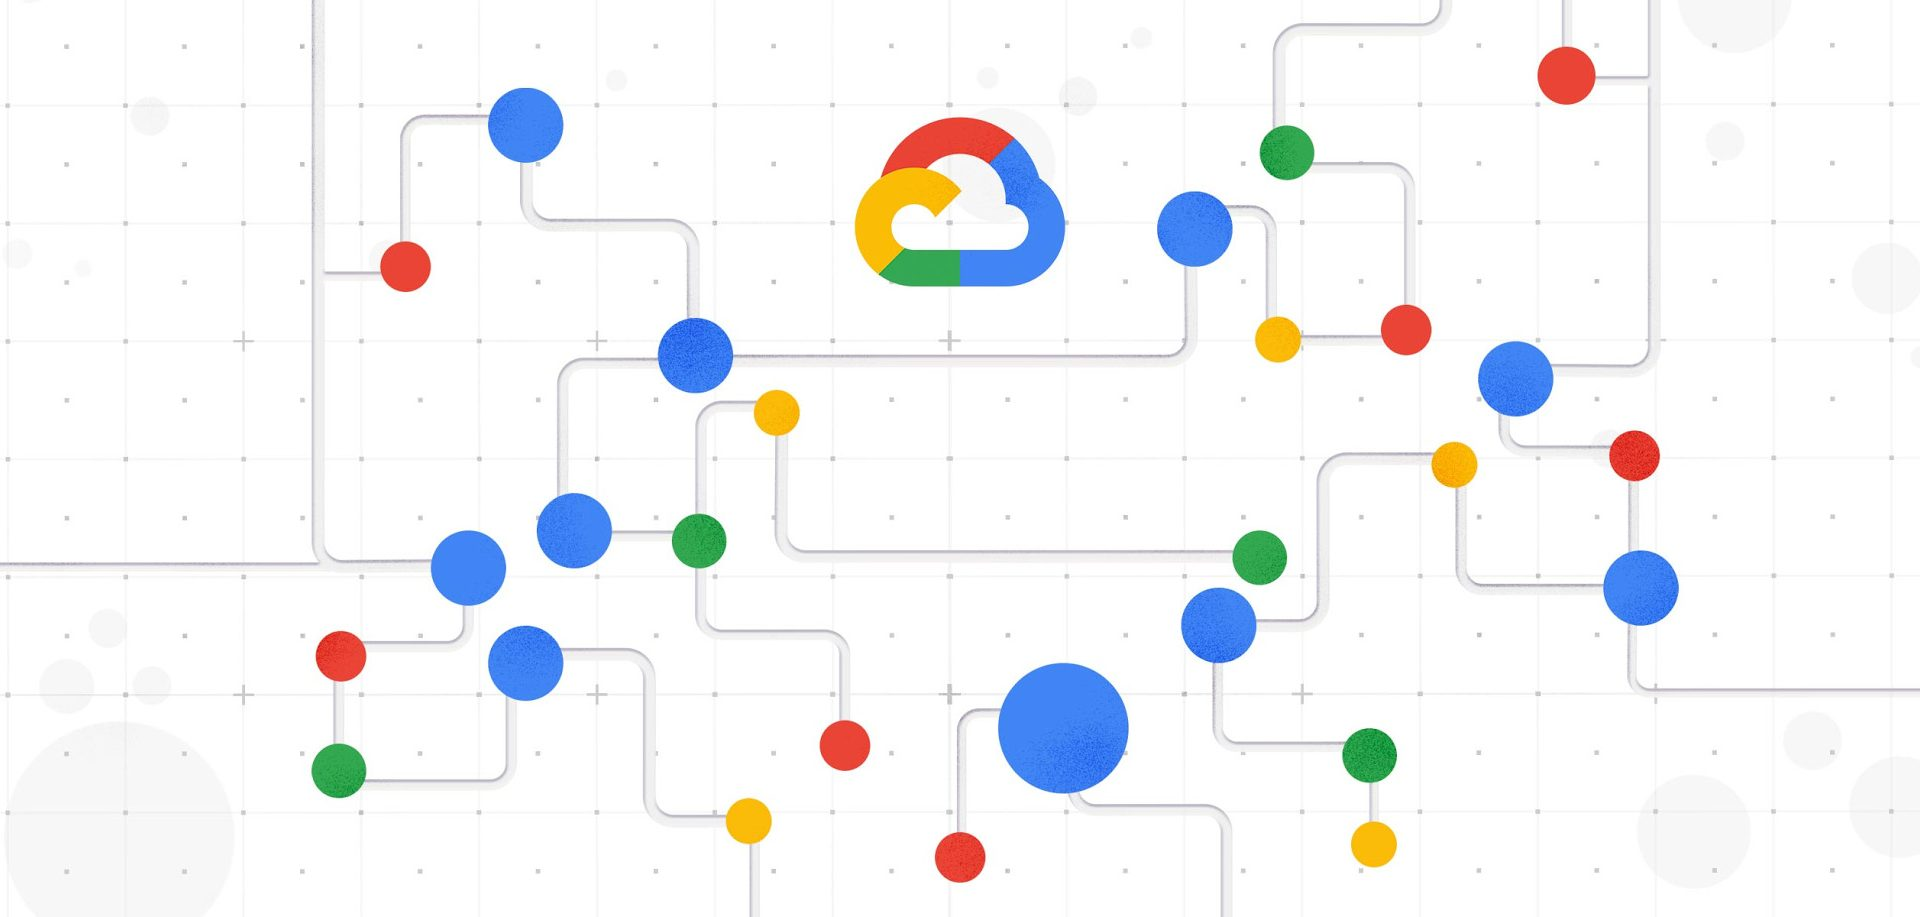 Google Cloud | Networking